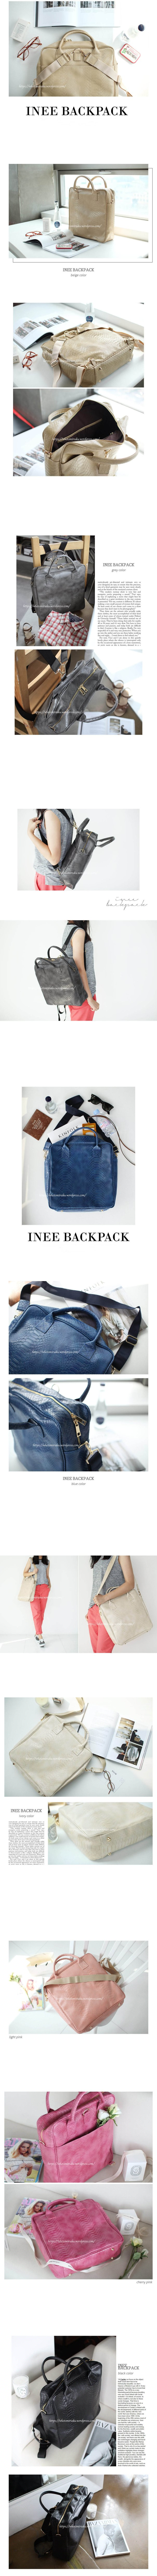 inee_backpack